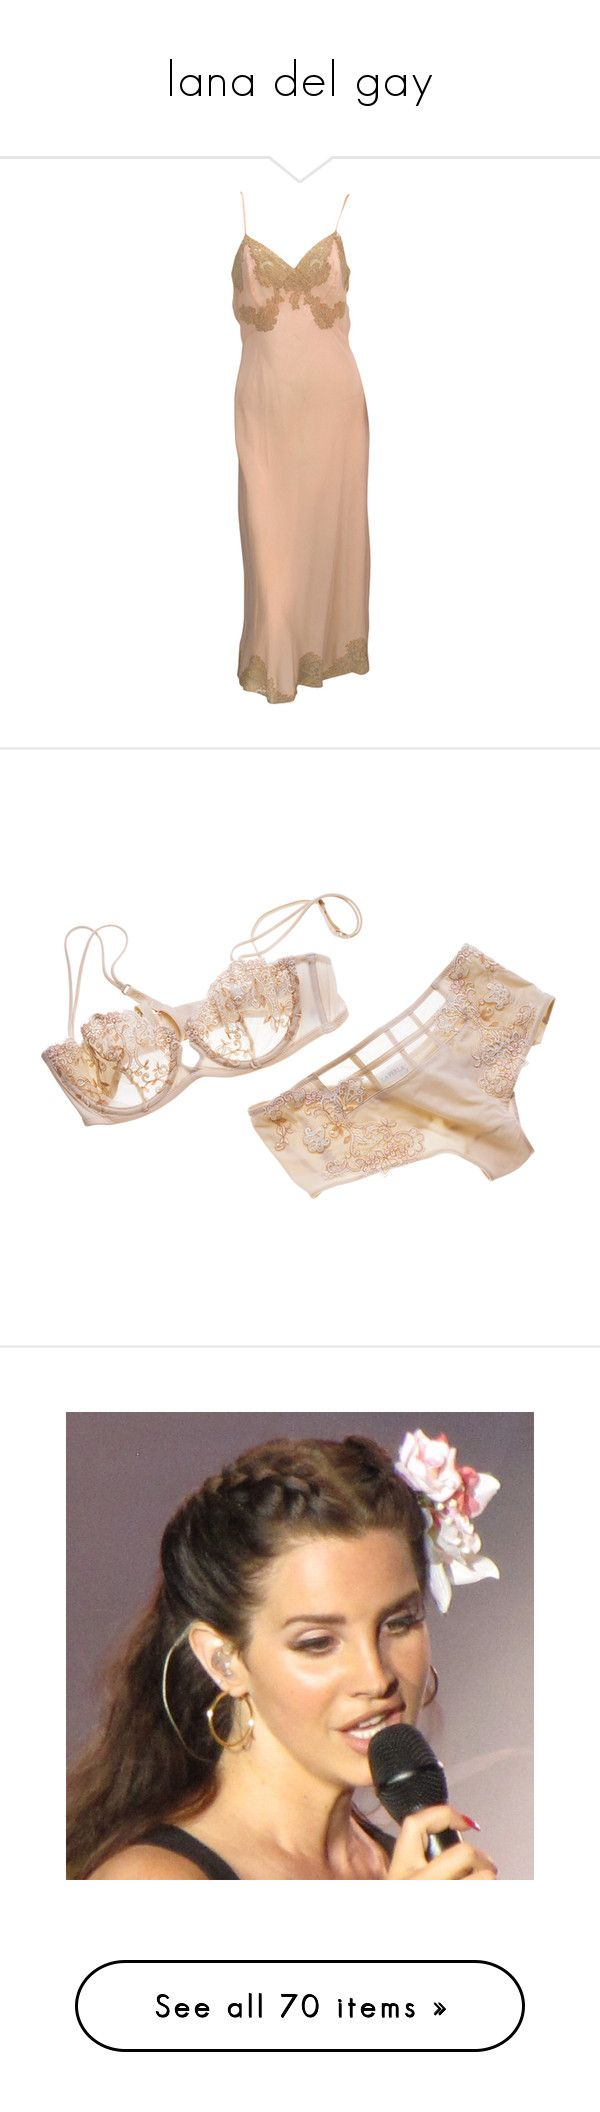 """""""lana del gay"""" by carolinehorann ❤ liked on Polyvore featuring intimates, shapewear, dresses, 1930s, lingerie, underwear, undergarments, wedding lingerie, sparkly lingerie and pictures"""